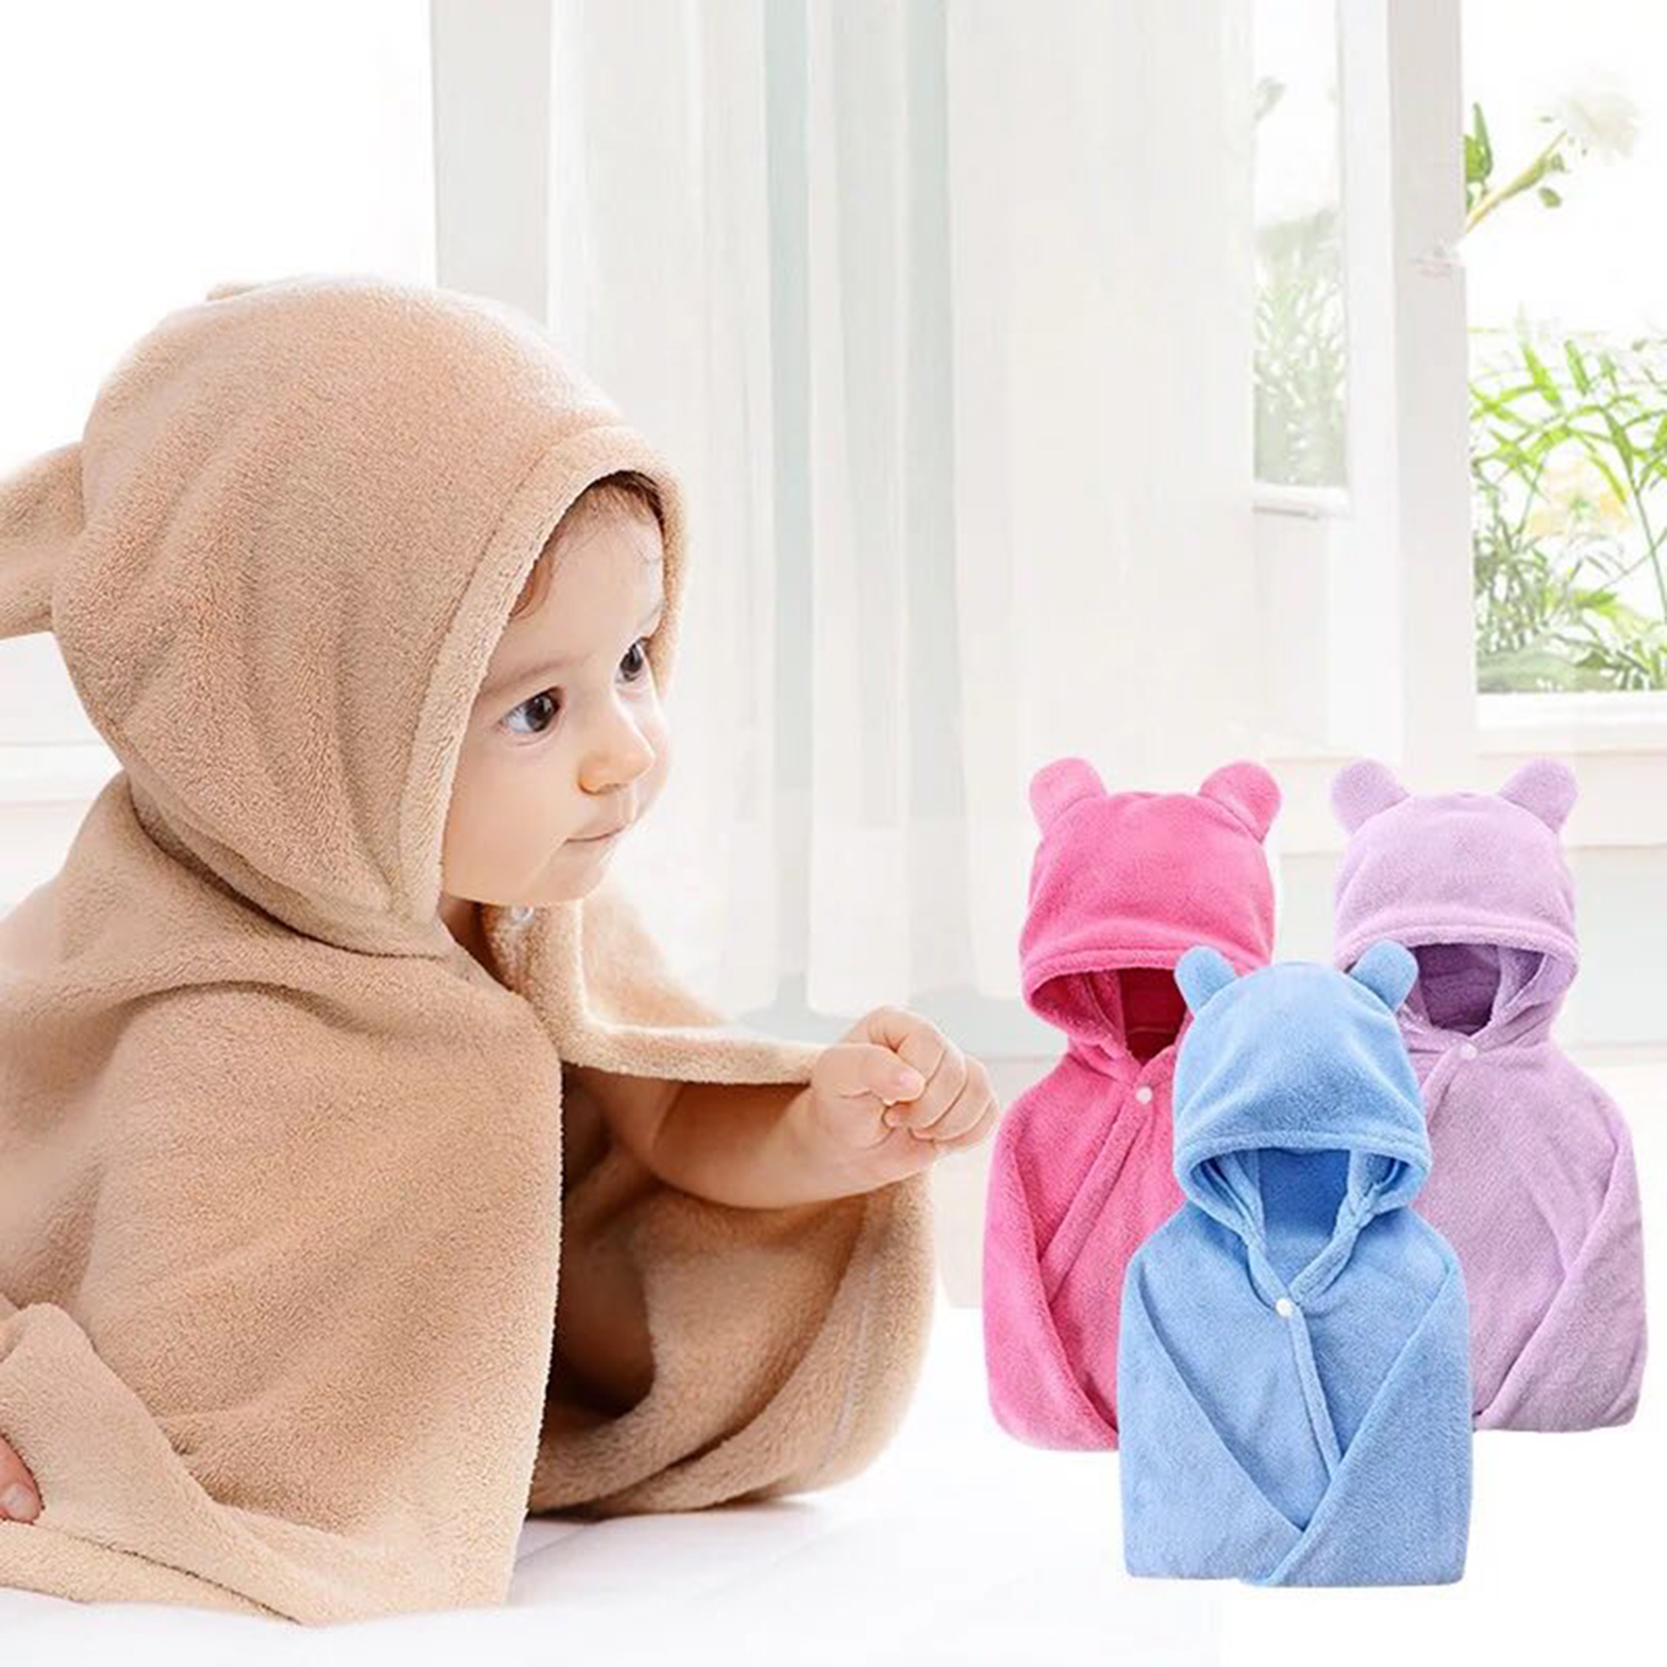 Emperor Baby Baby Hooded Towel